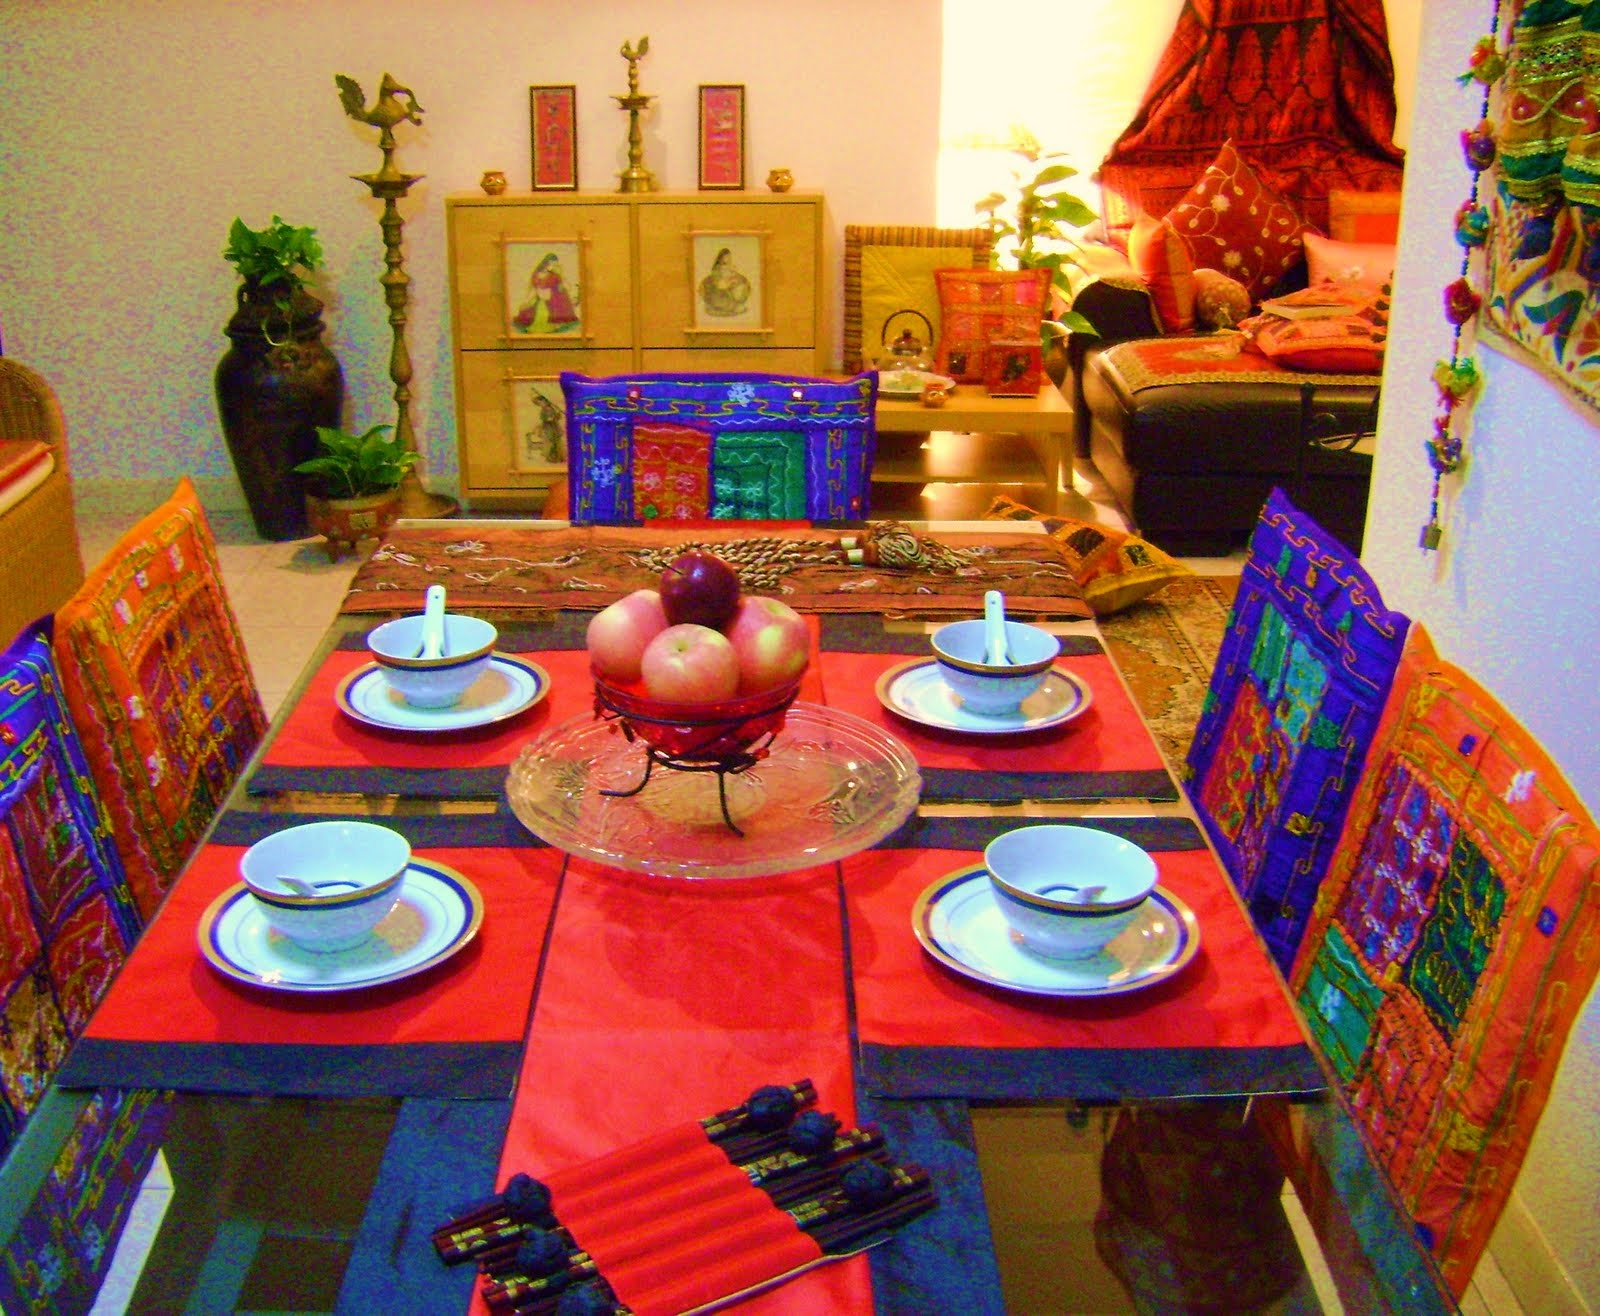 Foundation dezin decor impressive indian homes for House table decorations